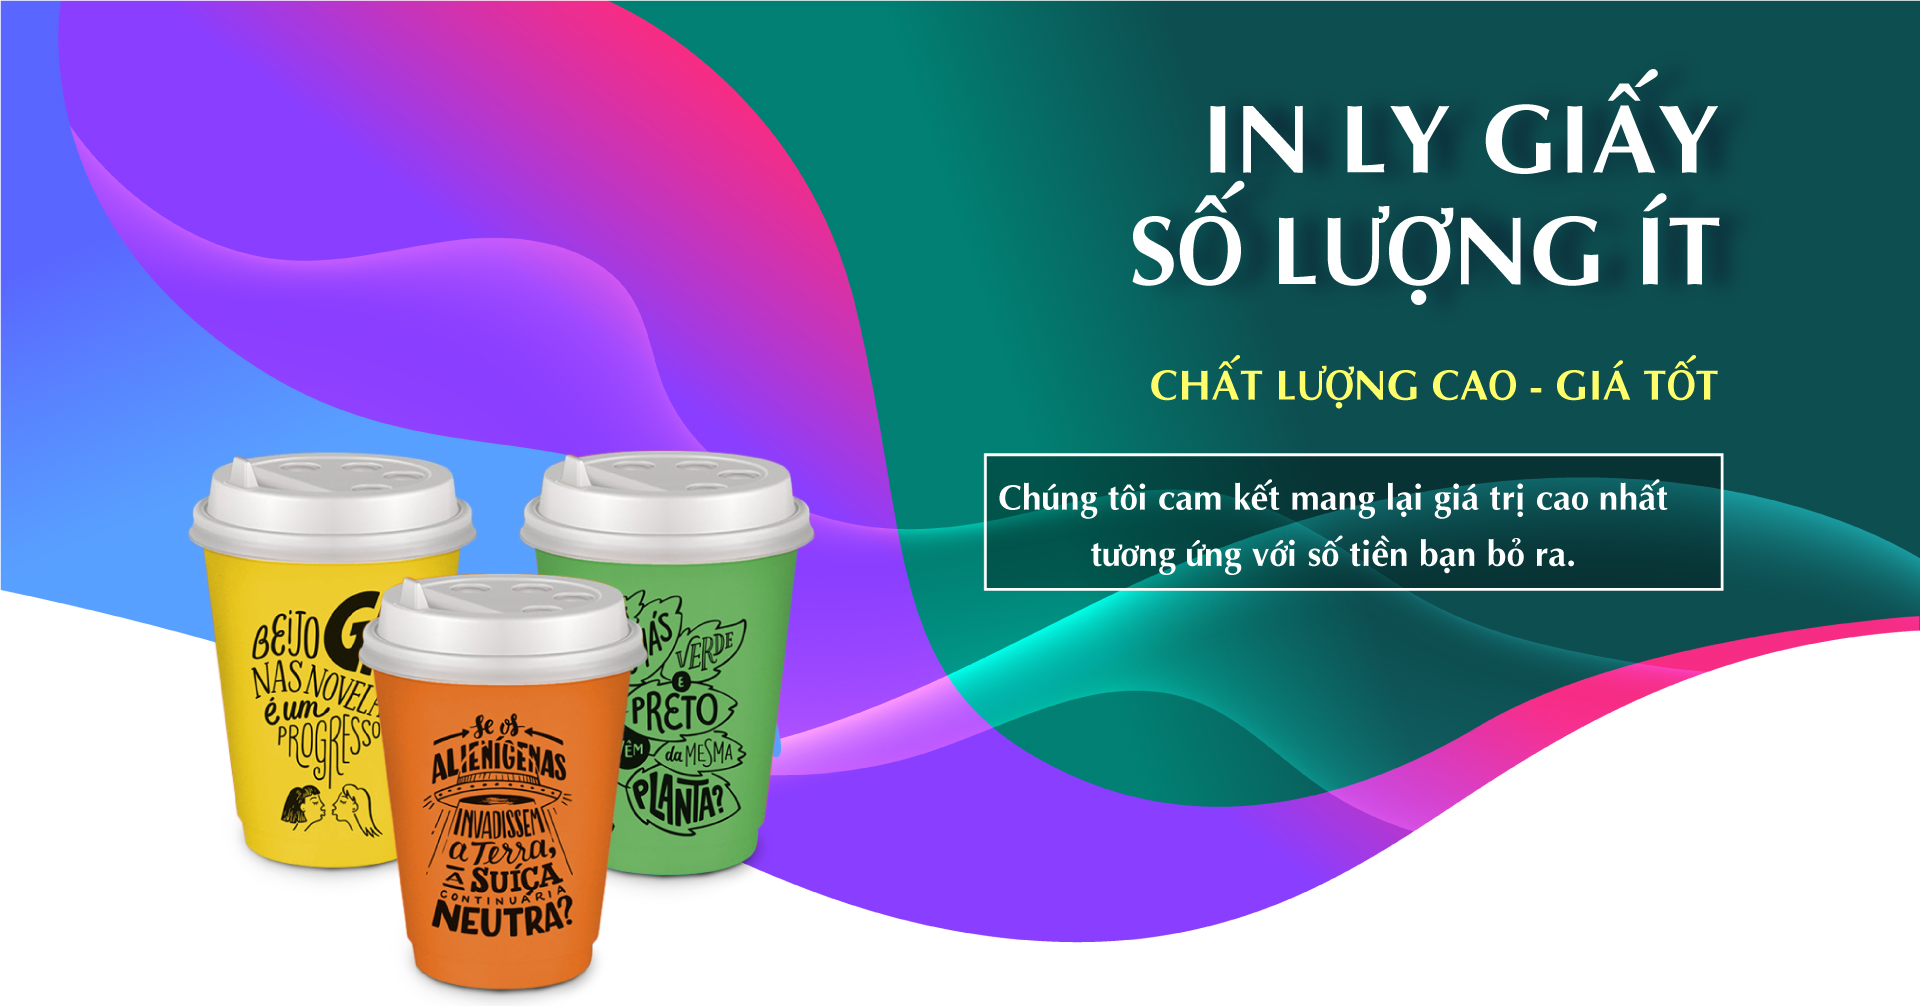 in-ly-giay-so-luong-it-thanh-tam